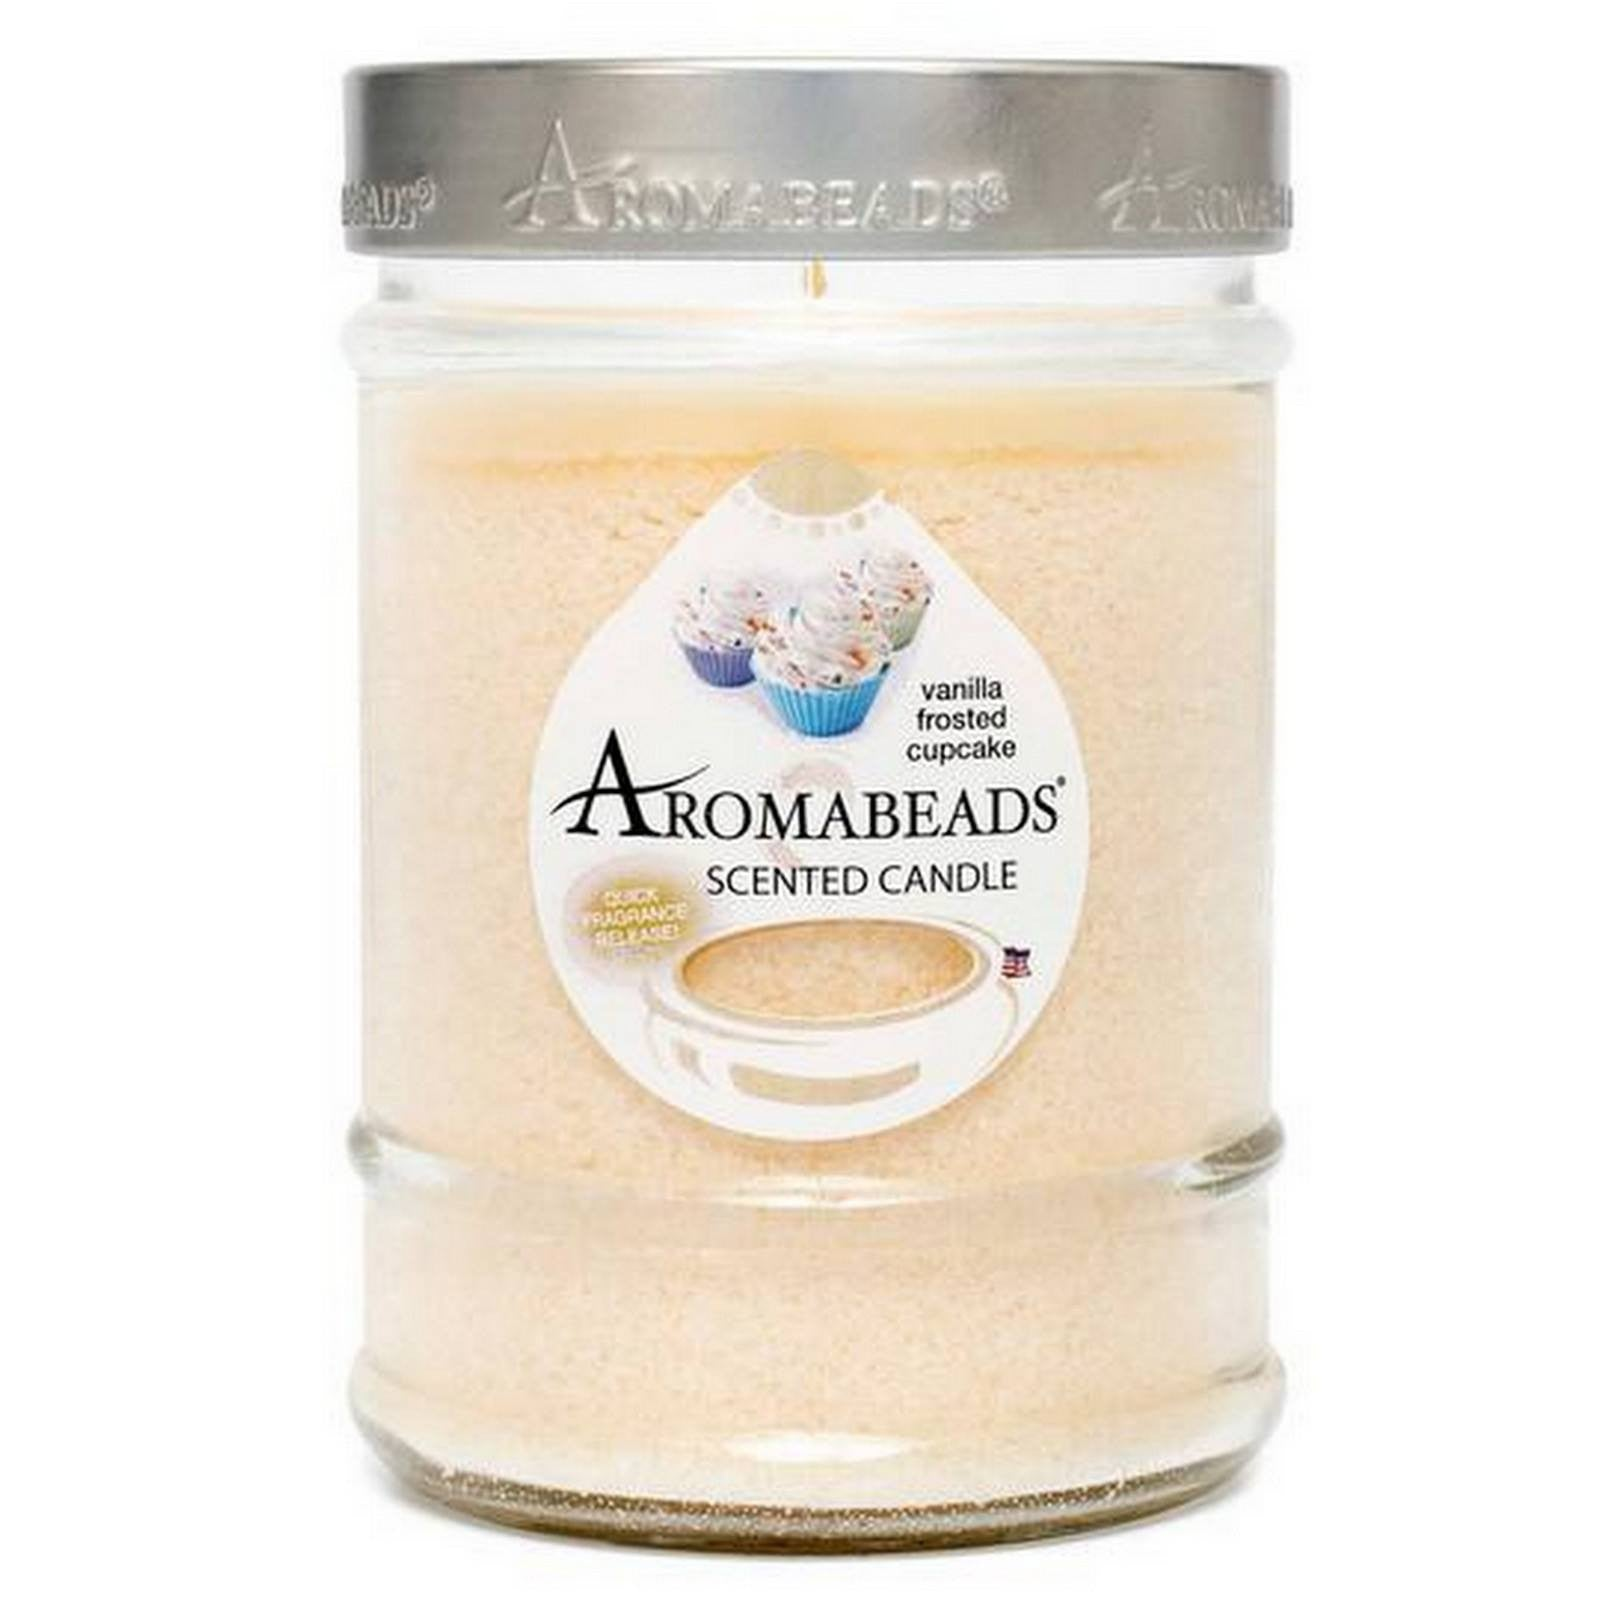 Aromabeads Vanilla Frosted Cupcake Scented Candle Aromabeads Candlemart.com $ 9.99